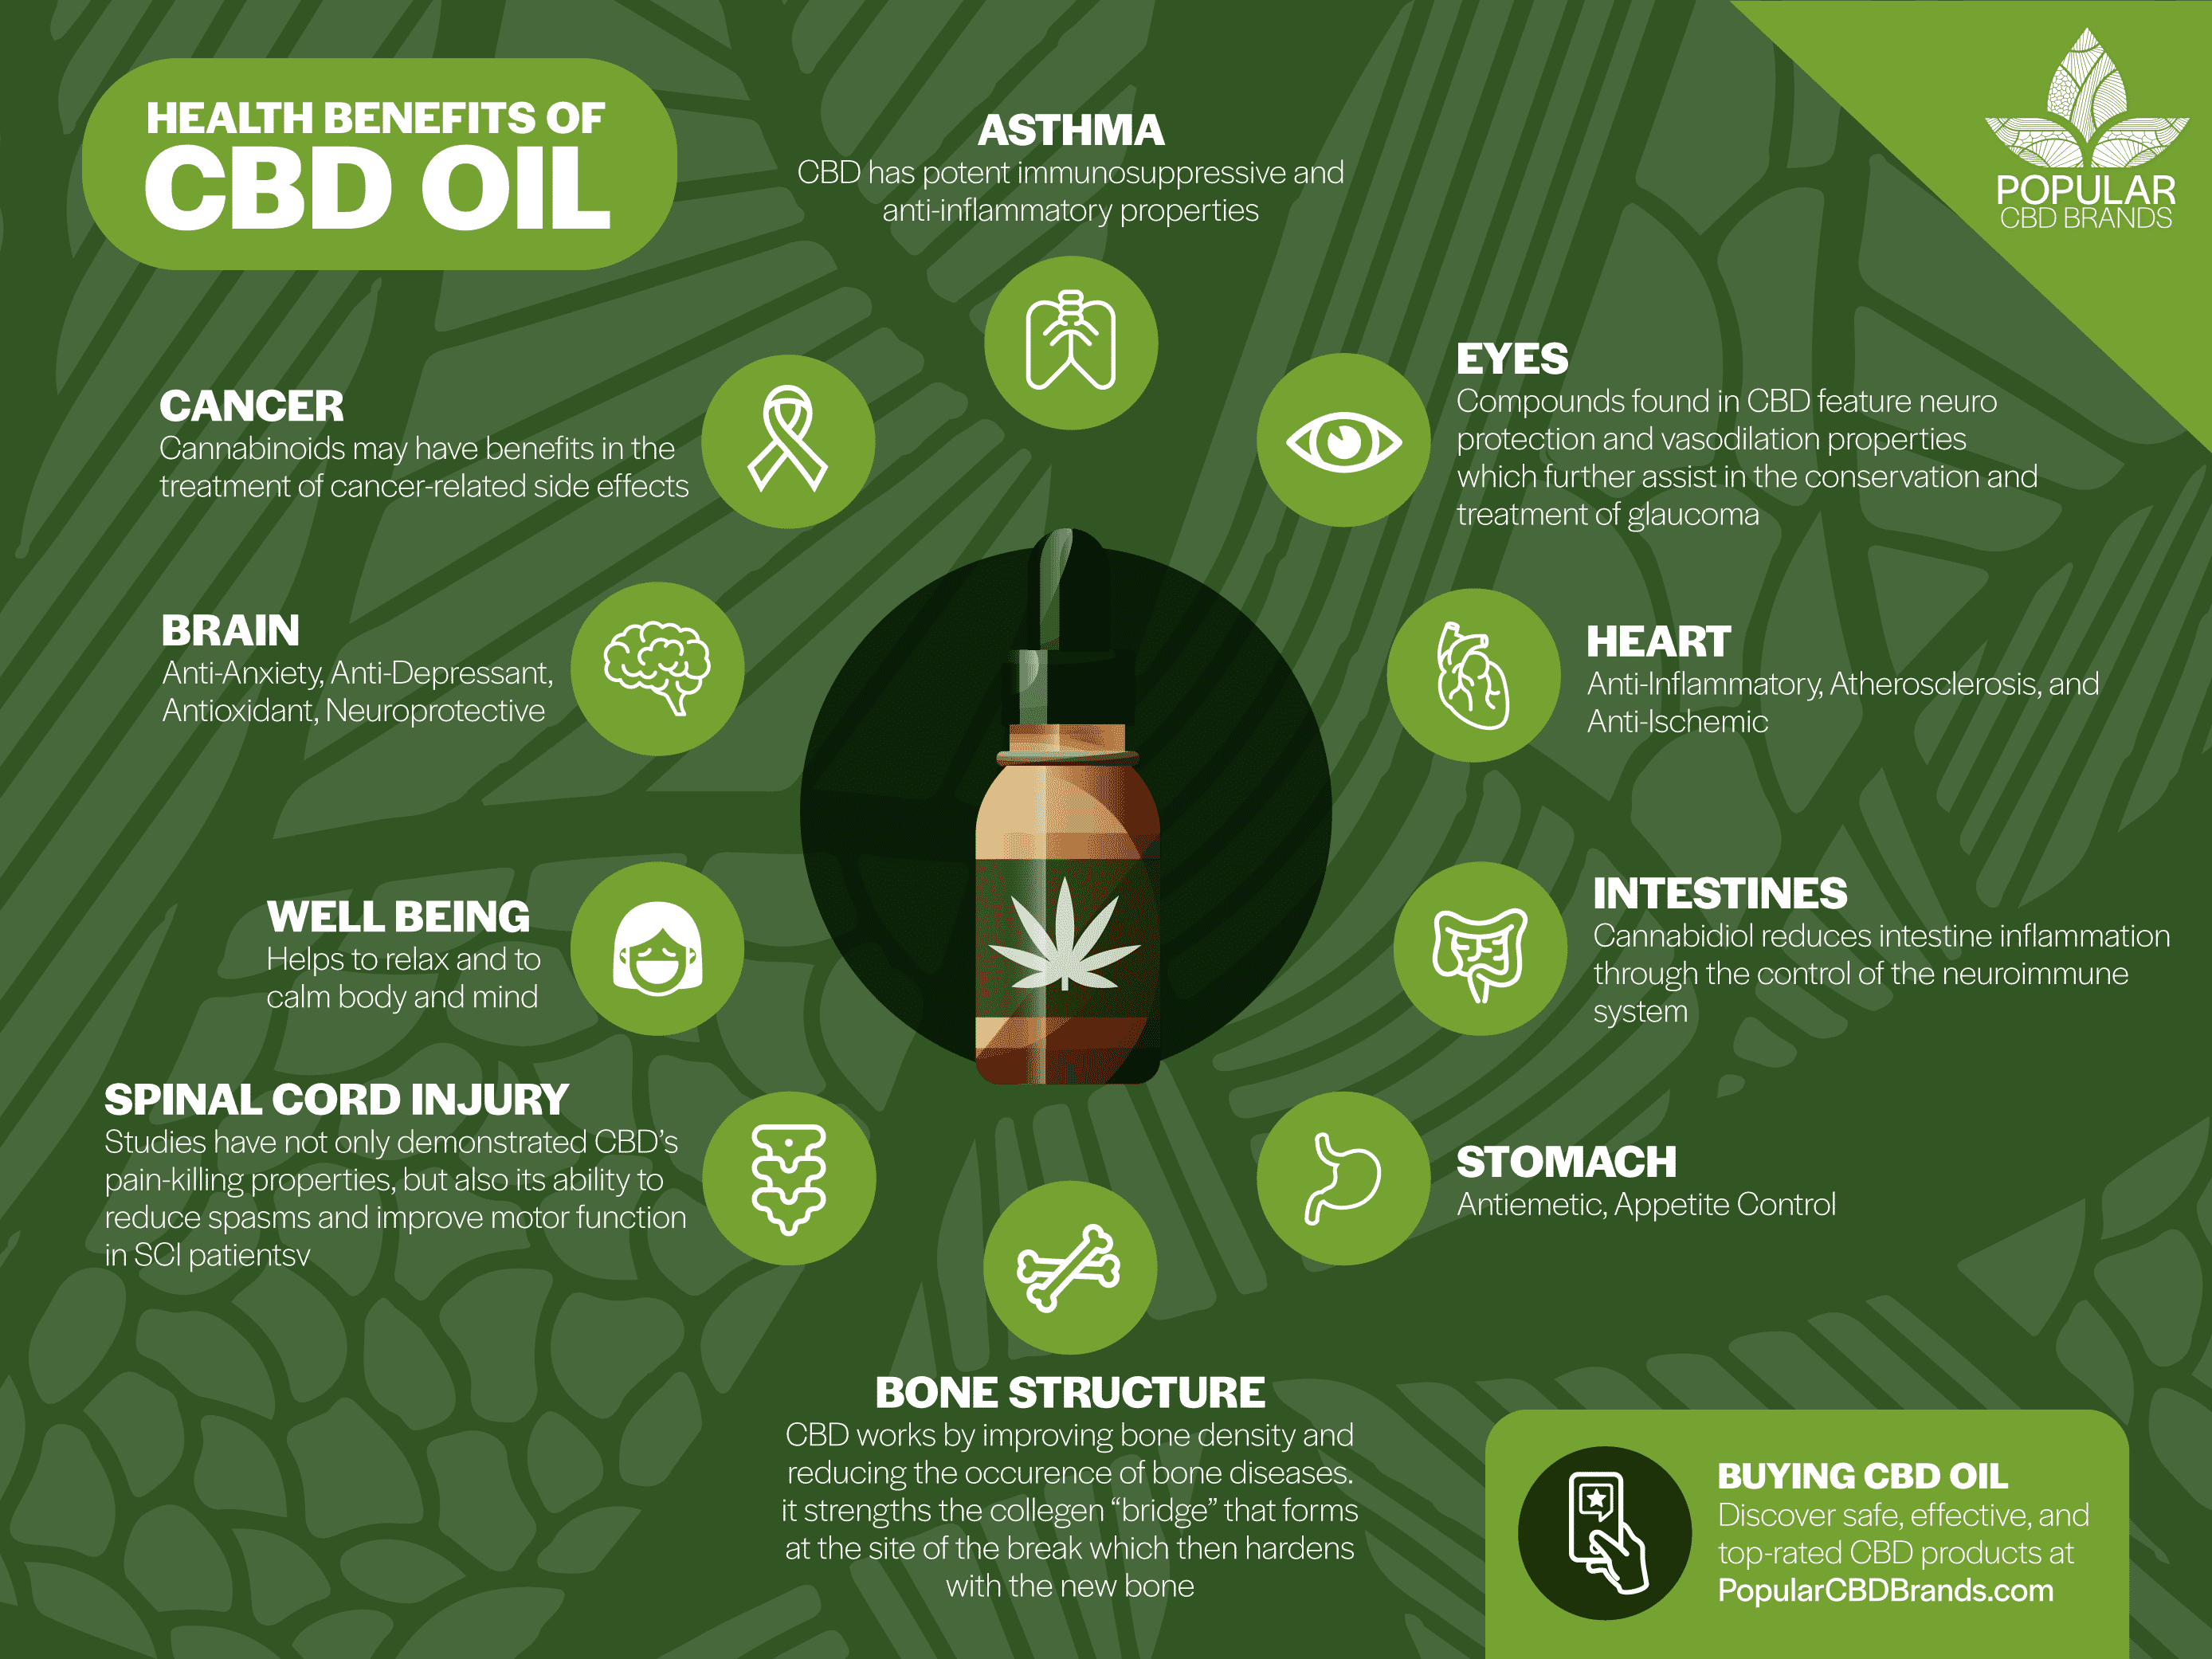 How to use CBD Oil – Facts about CBD